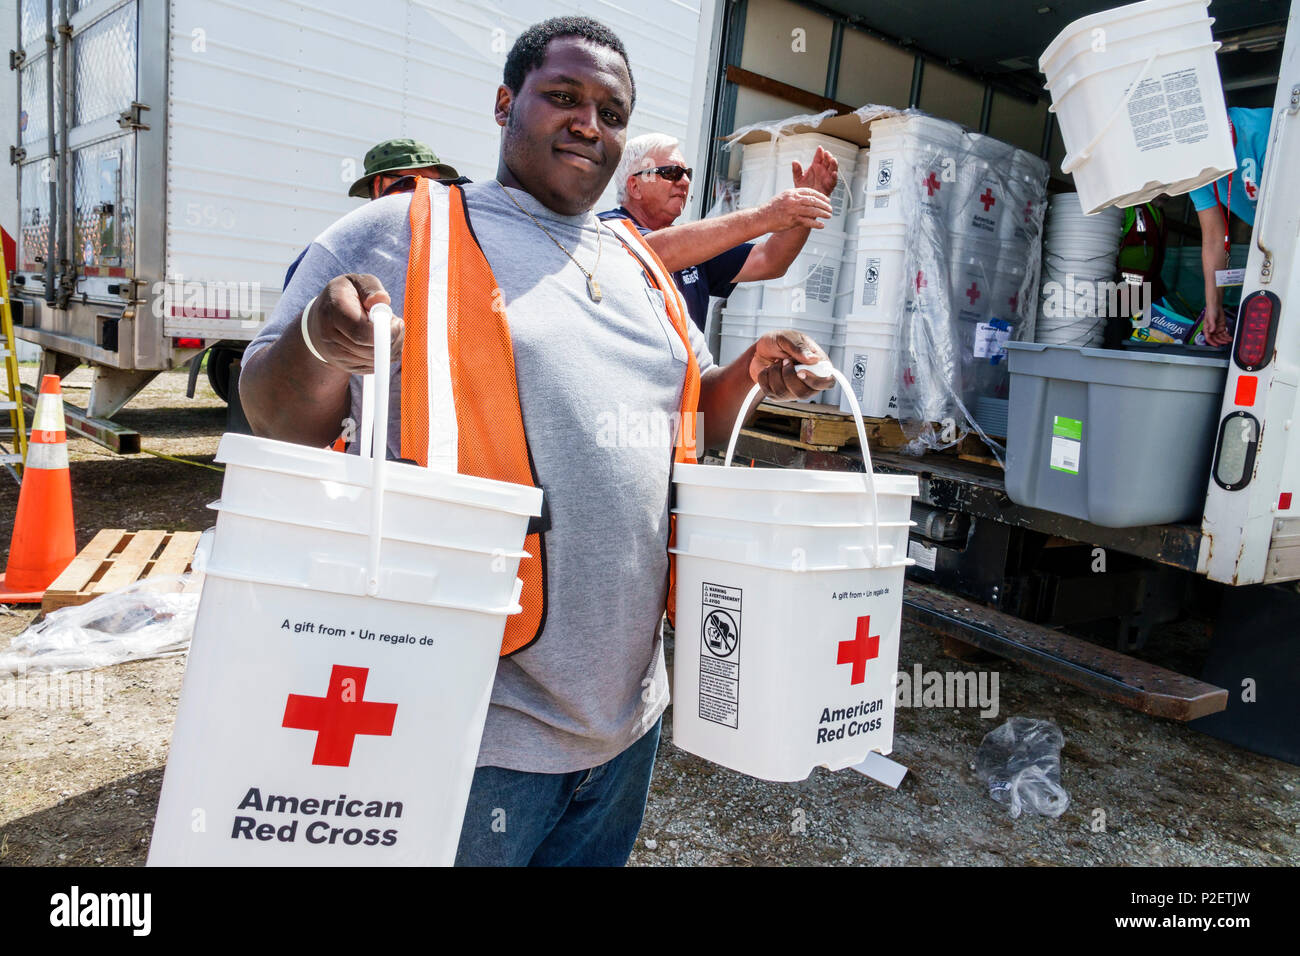 Florida Everglades City after Hurricane Irma emergency response recovery assistance distribution site Red Cross workers volunteer Black man unloading truck - Stock Image